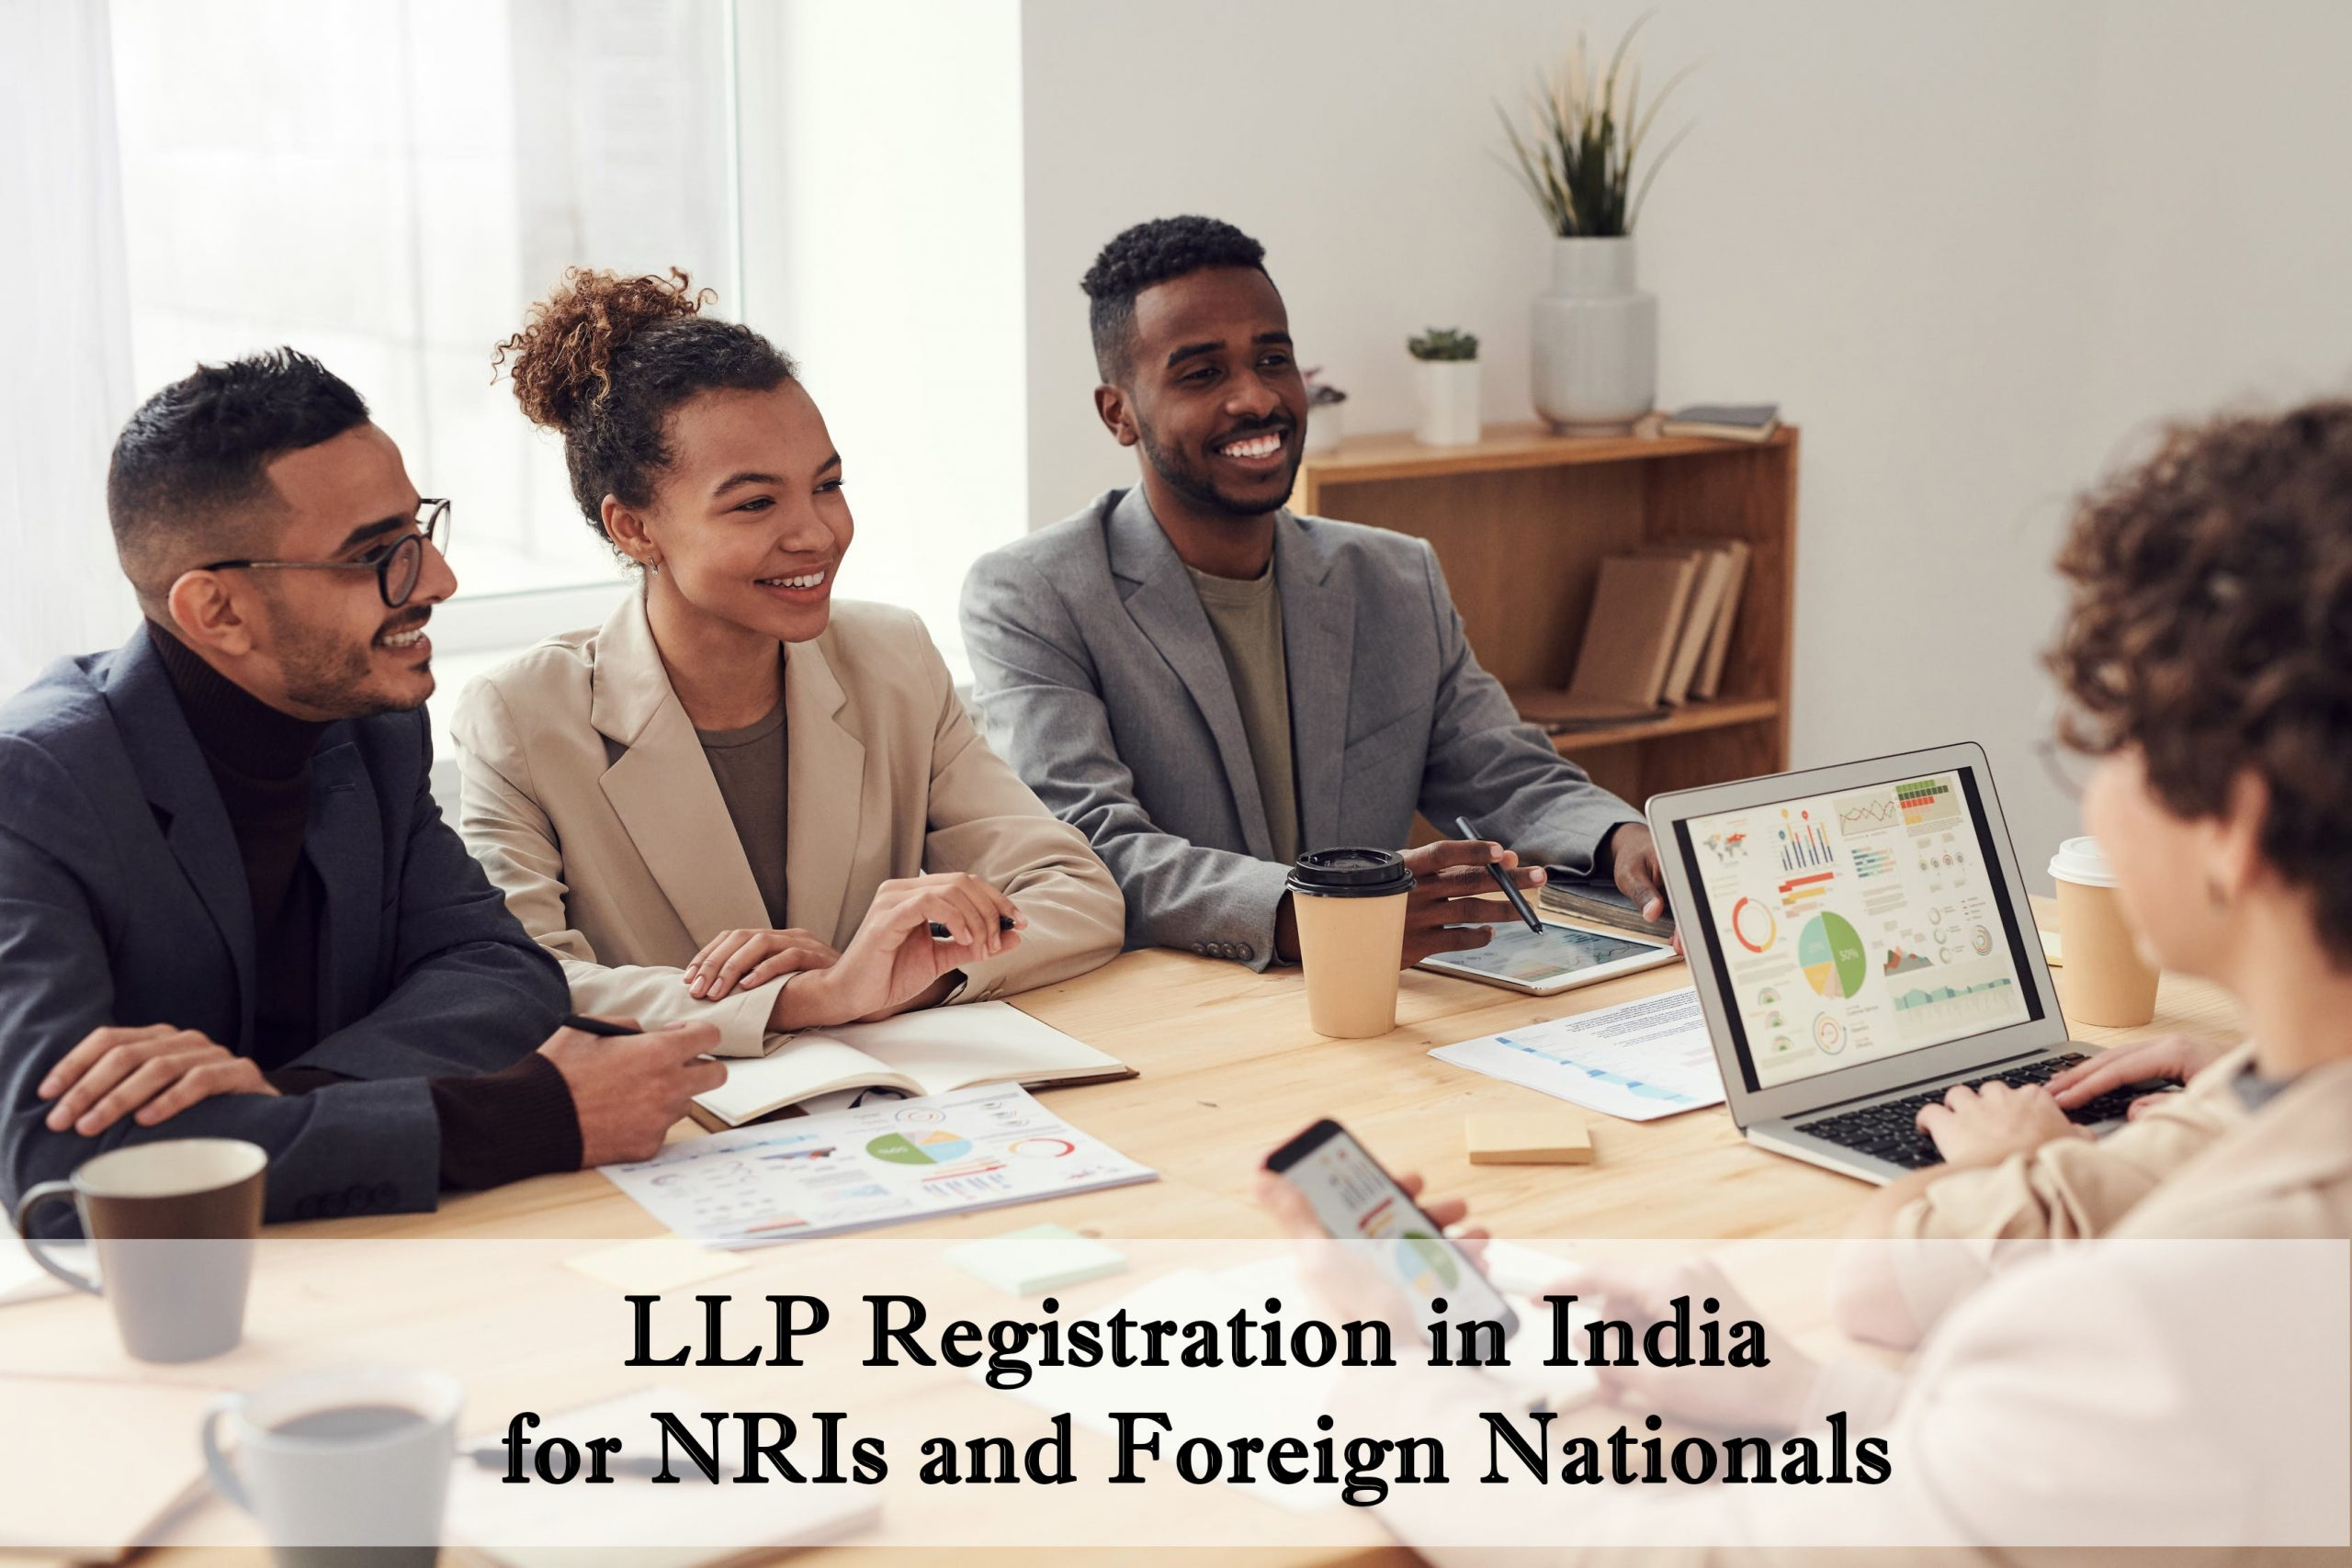 llp registration in India